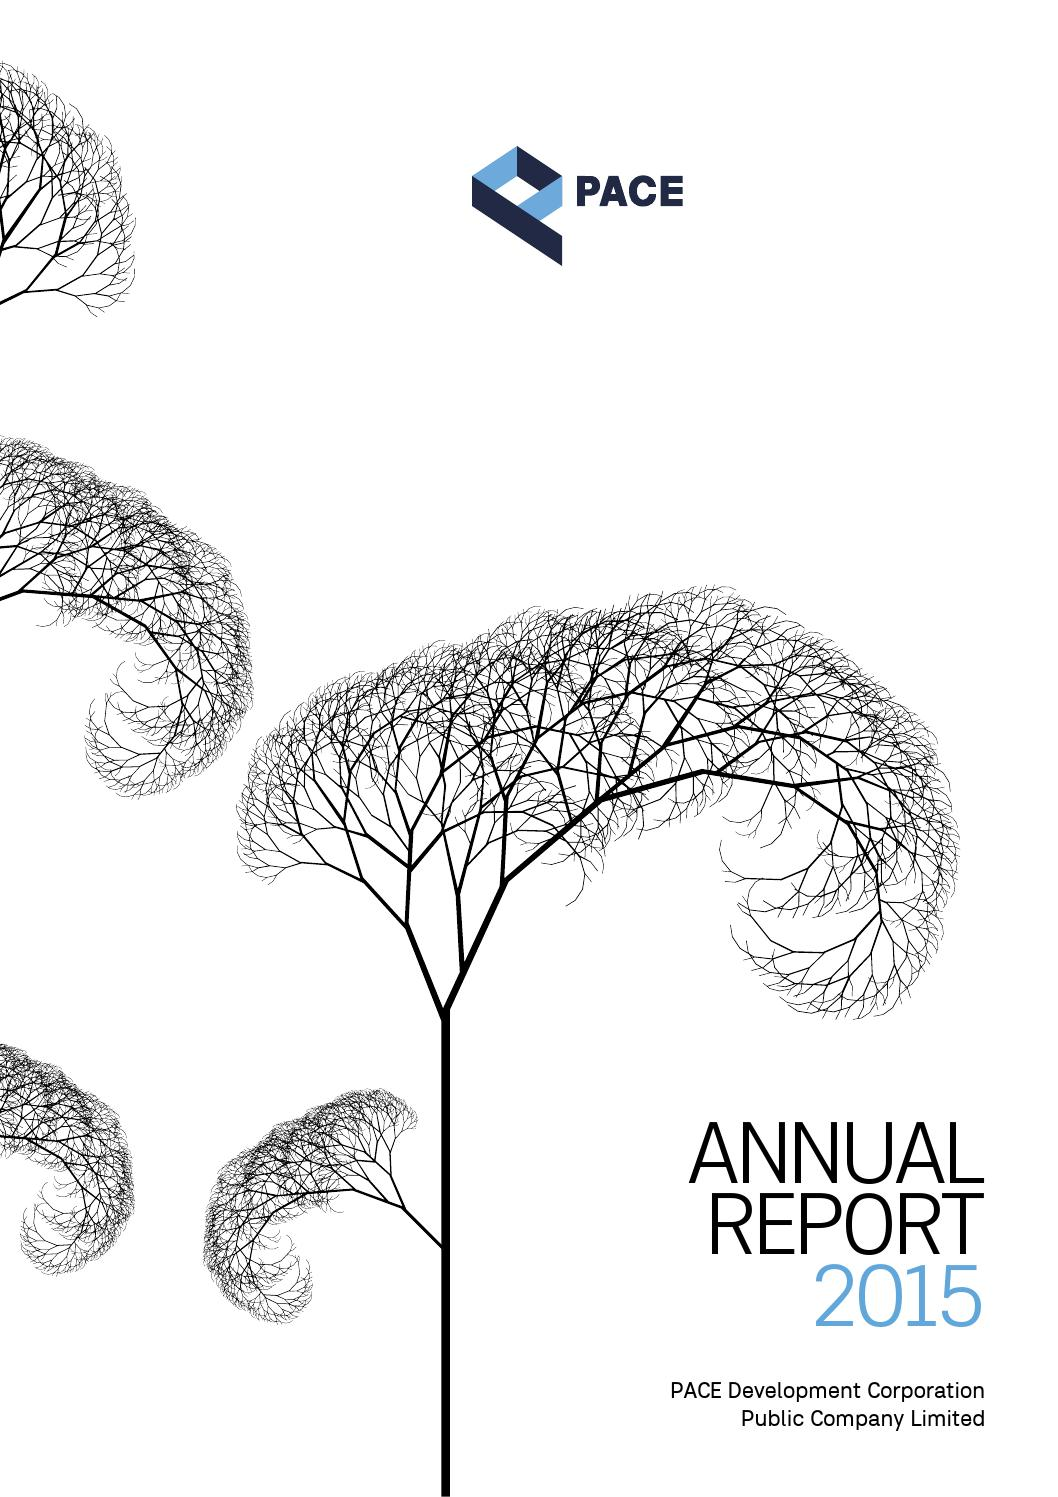 PACE : Annual Report 2015 by anisa - issuu